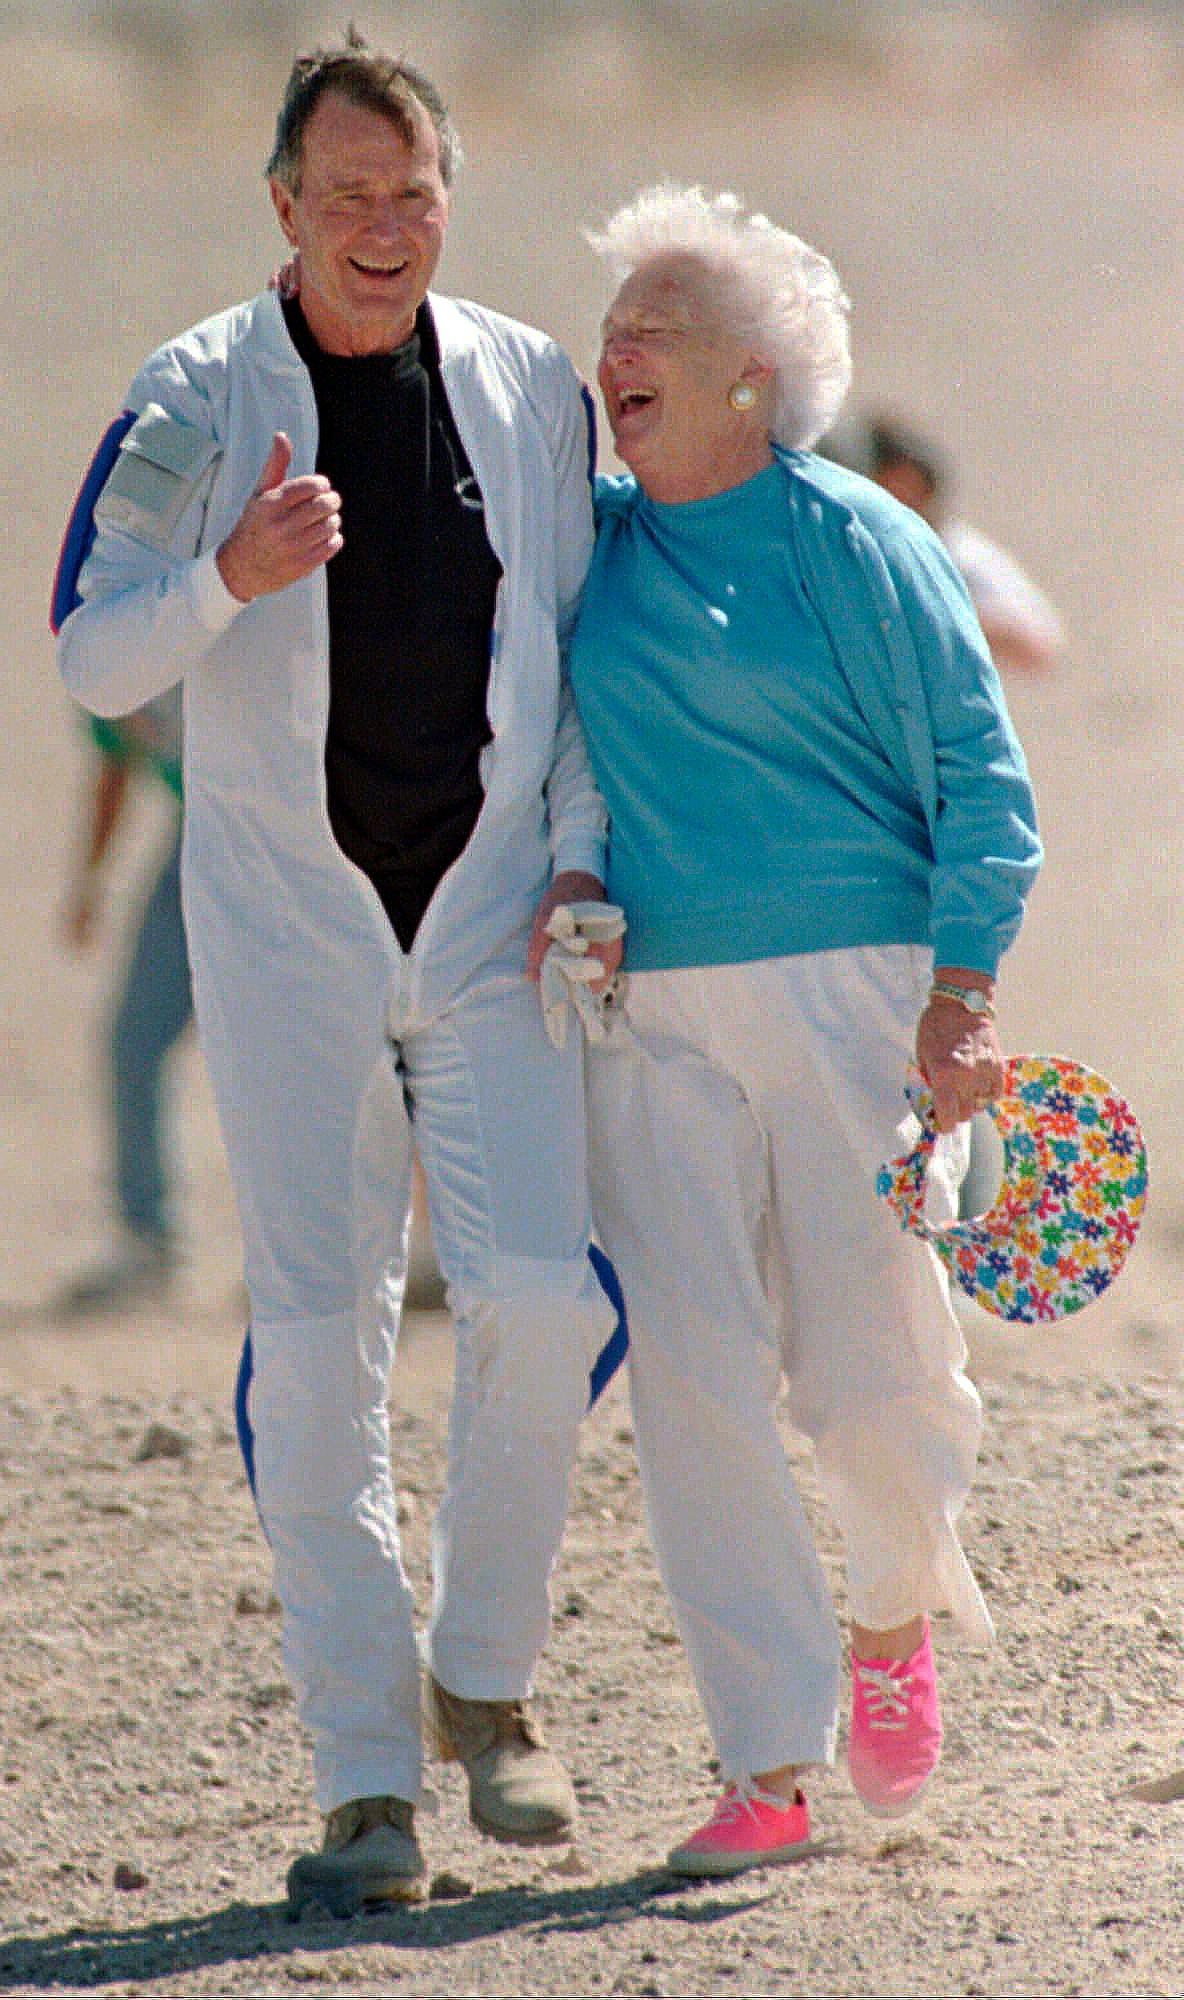 "FILE - In this March 25, 1997, file photo, former President George H.W. Bush gets a hug from his wife Barbara after he made a successful parachute jump at the U.S. Army's Yuma Proving Ground outside of Yuma, Ariz. Former first couple George and Barbara Bush's relationship is a true love story, described by granddaughter Jenna Bush Hager as ""remarkable."" They met at a Christmas dance. She was 17. He was 18. Two years later they were married. Now 73 years later, with Barbara Bush declining further medical care for health problems, they are the longest-married couple in presidential history. (AP Photo/Mike Nelson, Pool, File)"